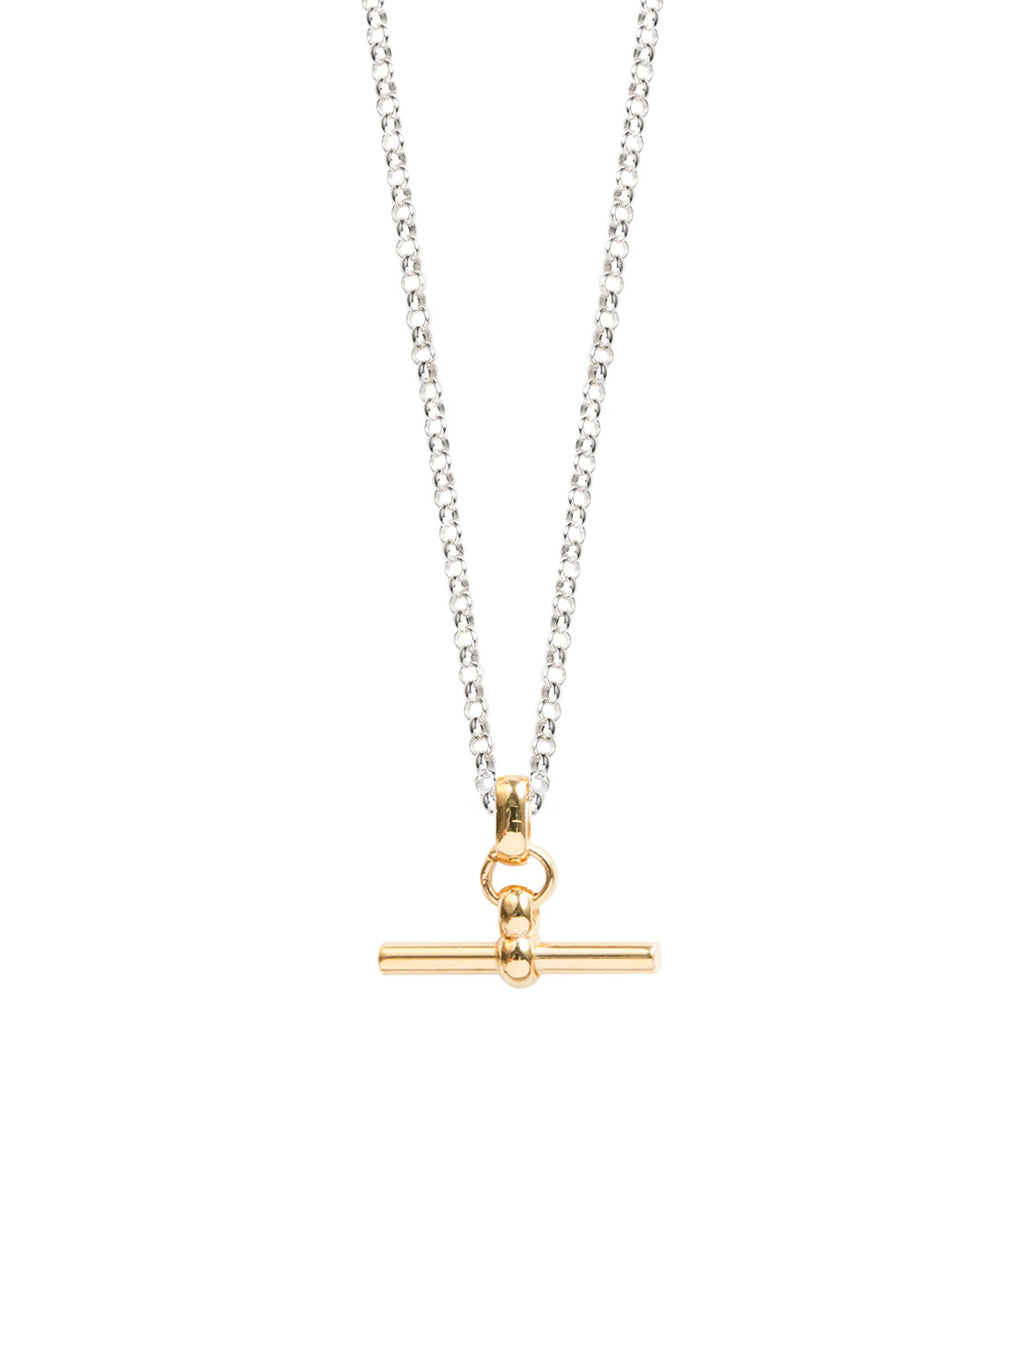 TILLY SVEAAS GOLD T BAR ON SILVER BELACHER CHAIN NECKLACE